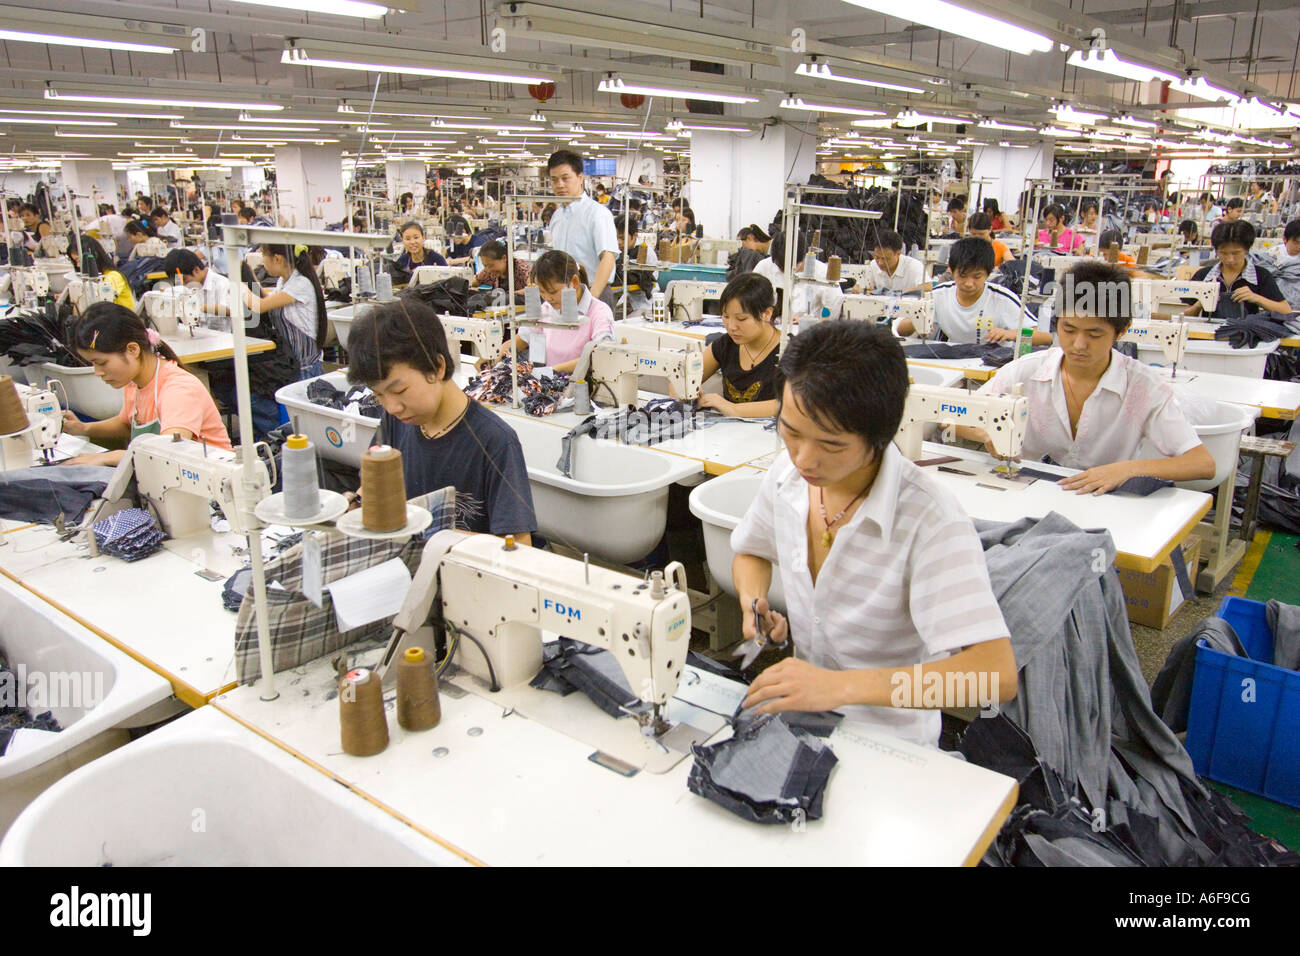 Our factory is located in Guangzhou city, which only 40miutes by car to Canton Fair hall, 50minutes to airport, very convenient for customers to visit us. Contact Info No Shapu Avenue,Xintang Town(worldwide denim town), Guangzhou, China.